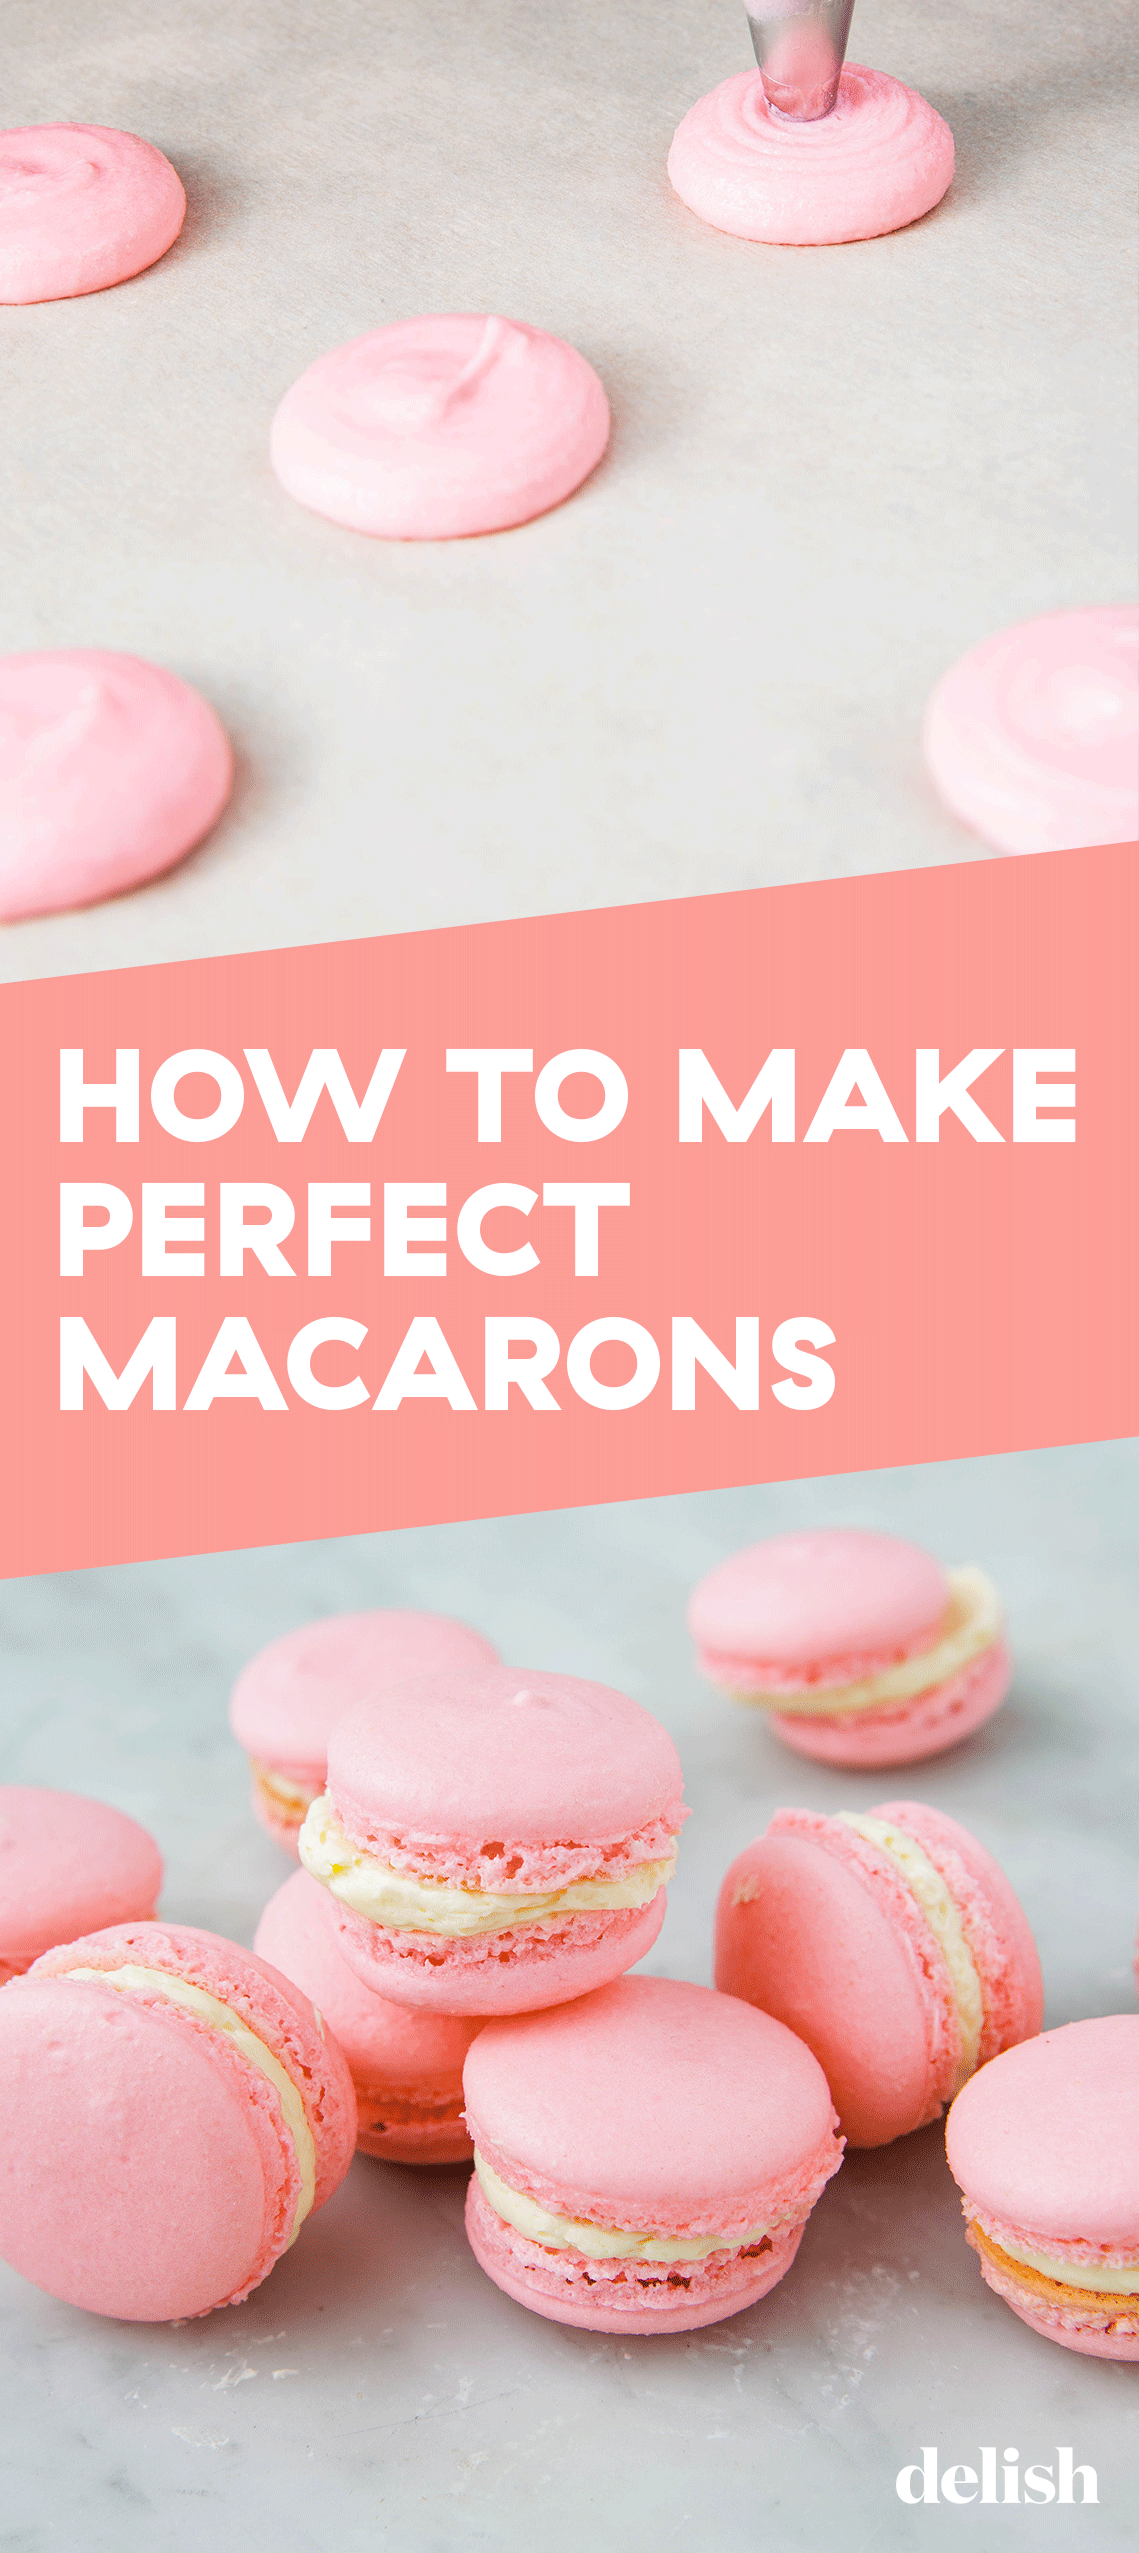 How To Make Macarons Making macarons isn't as hard as it looks, promise! Get the recipe at .